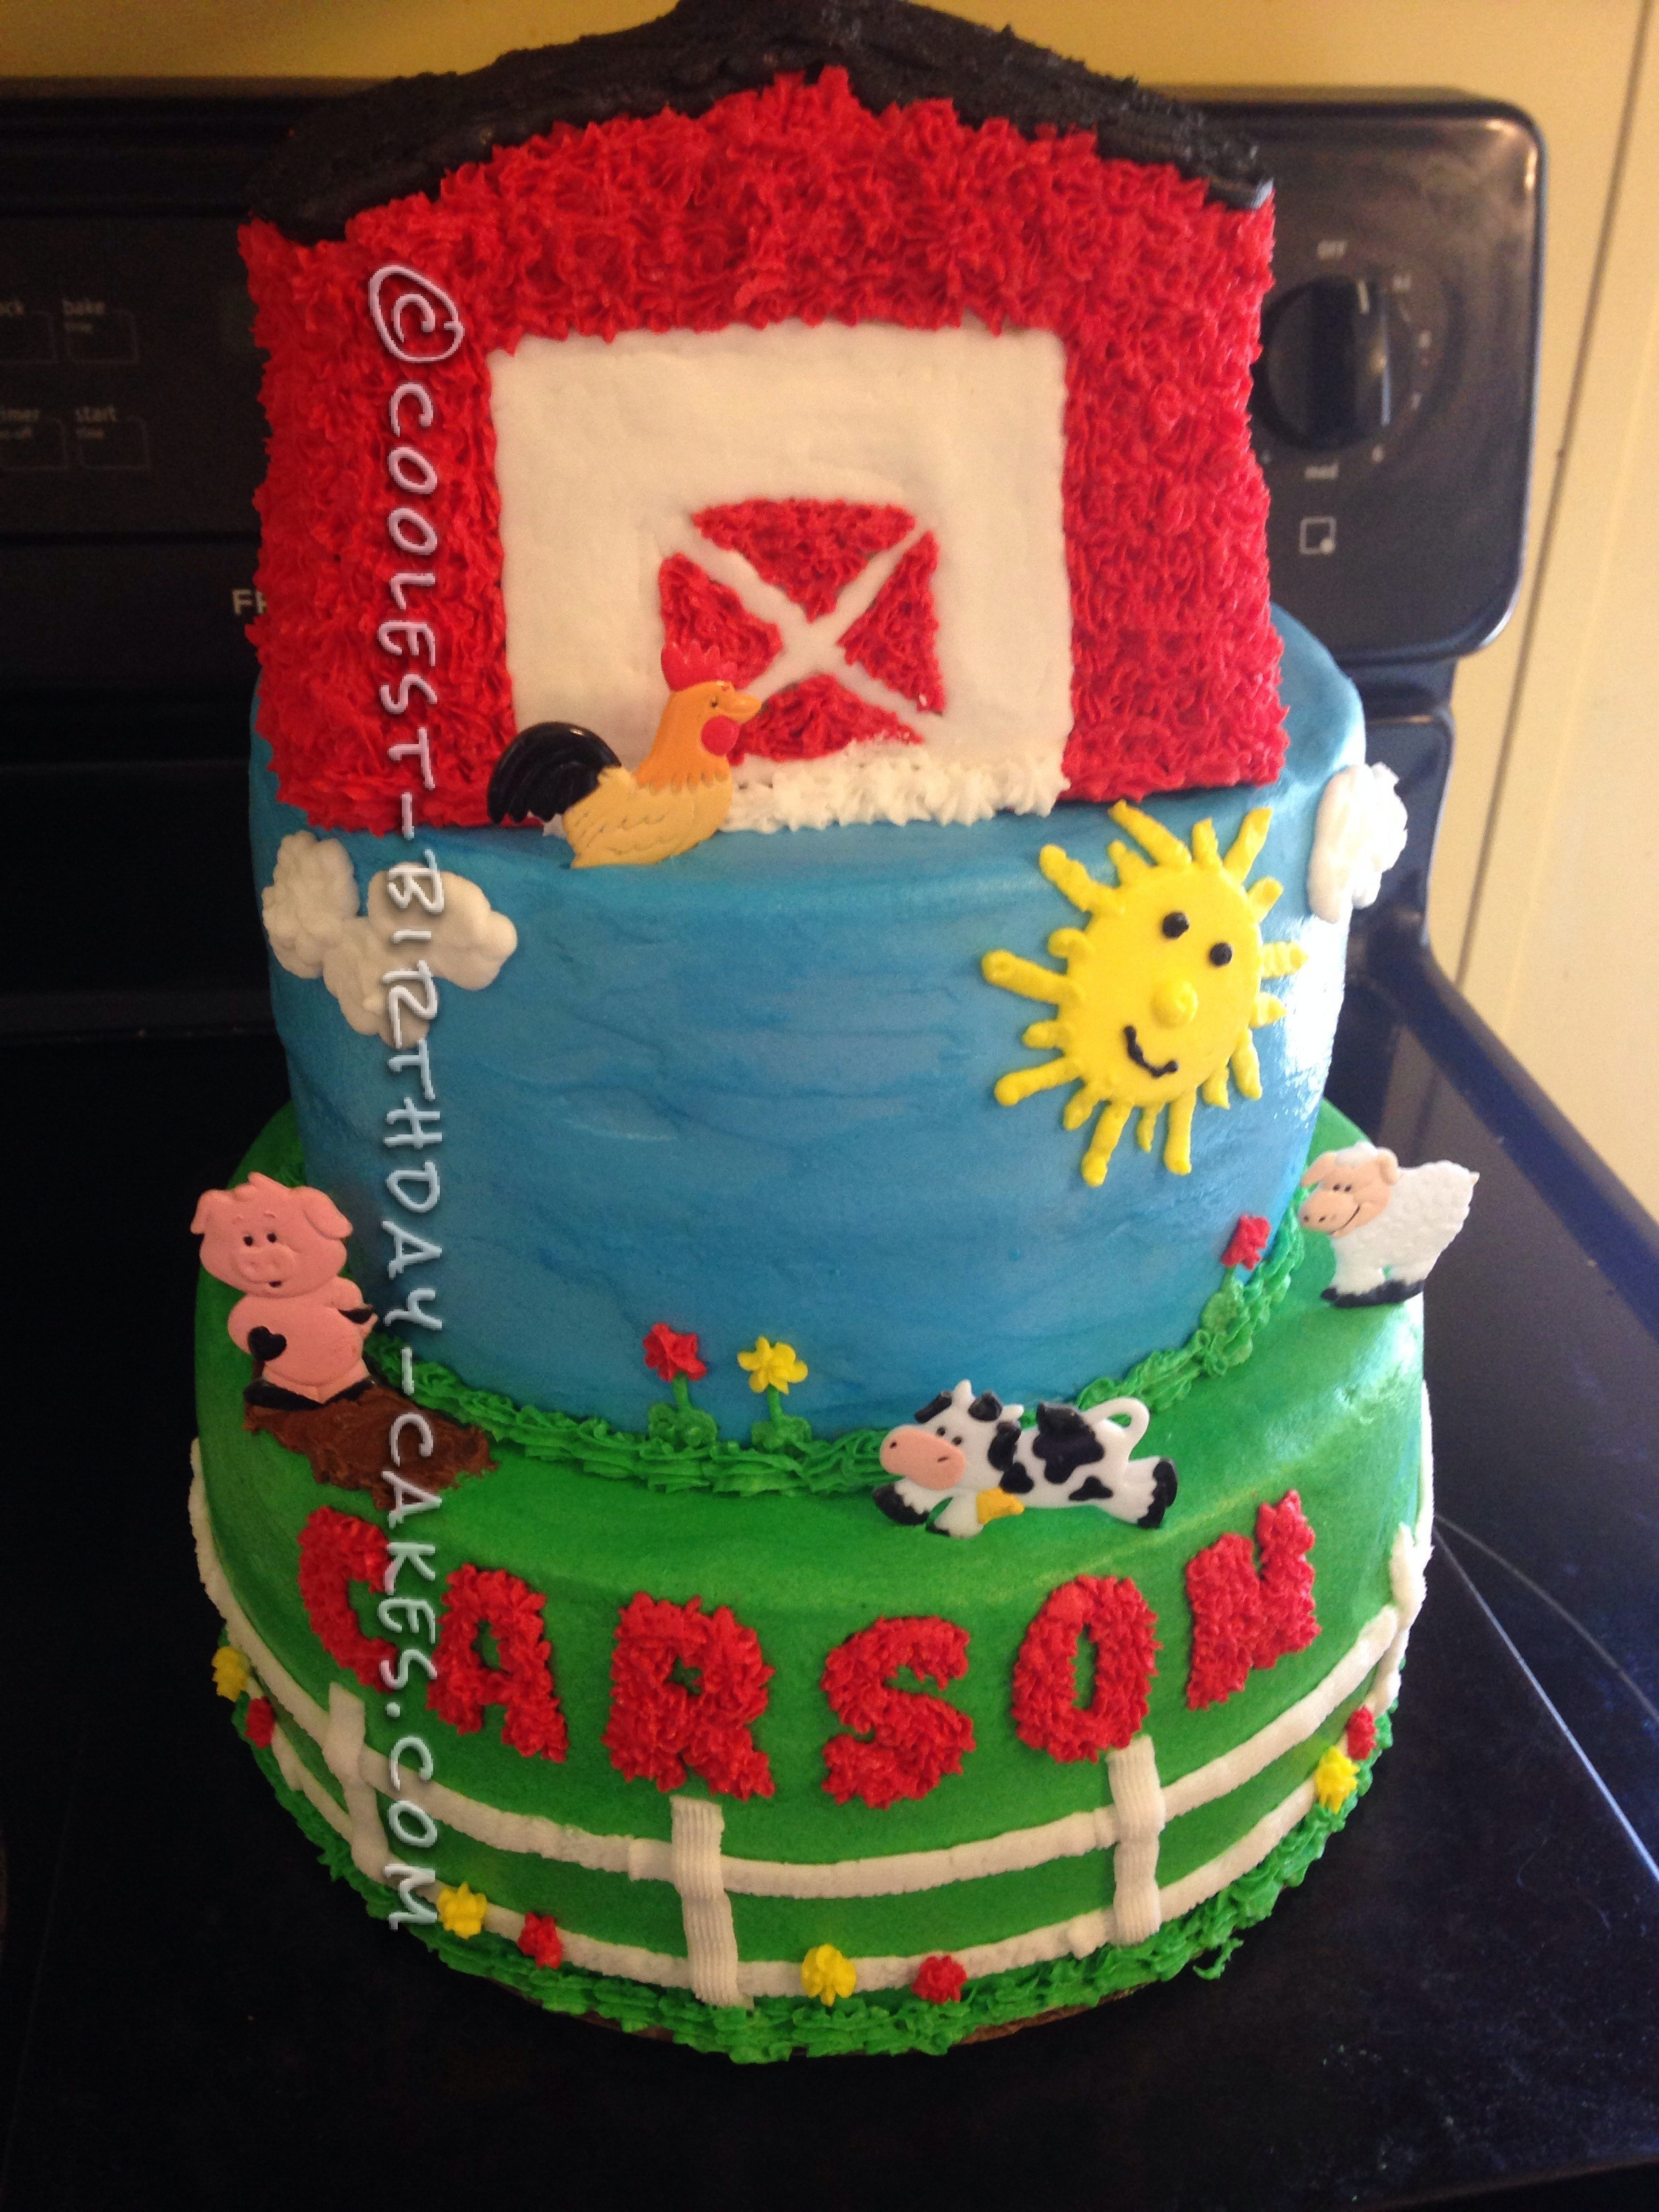 Cool 3-Tier Farm Cake for a First Birthday